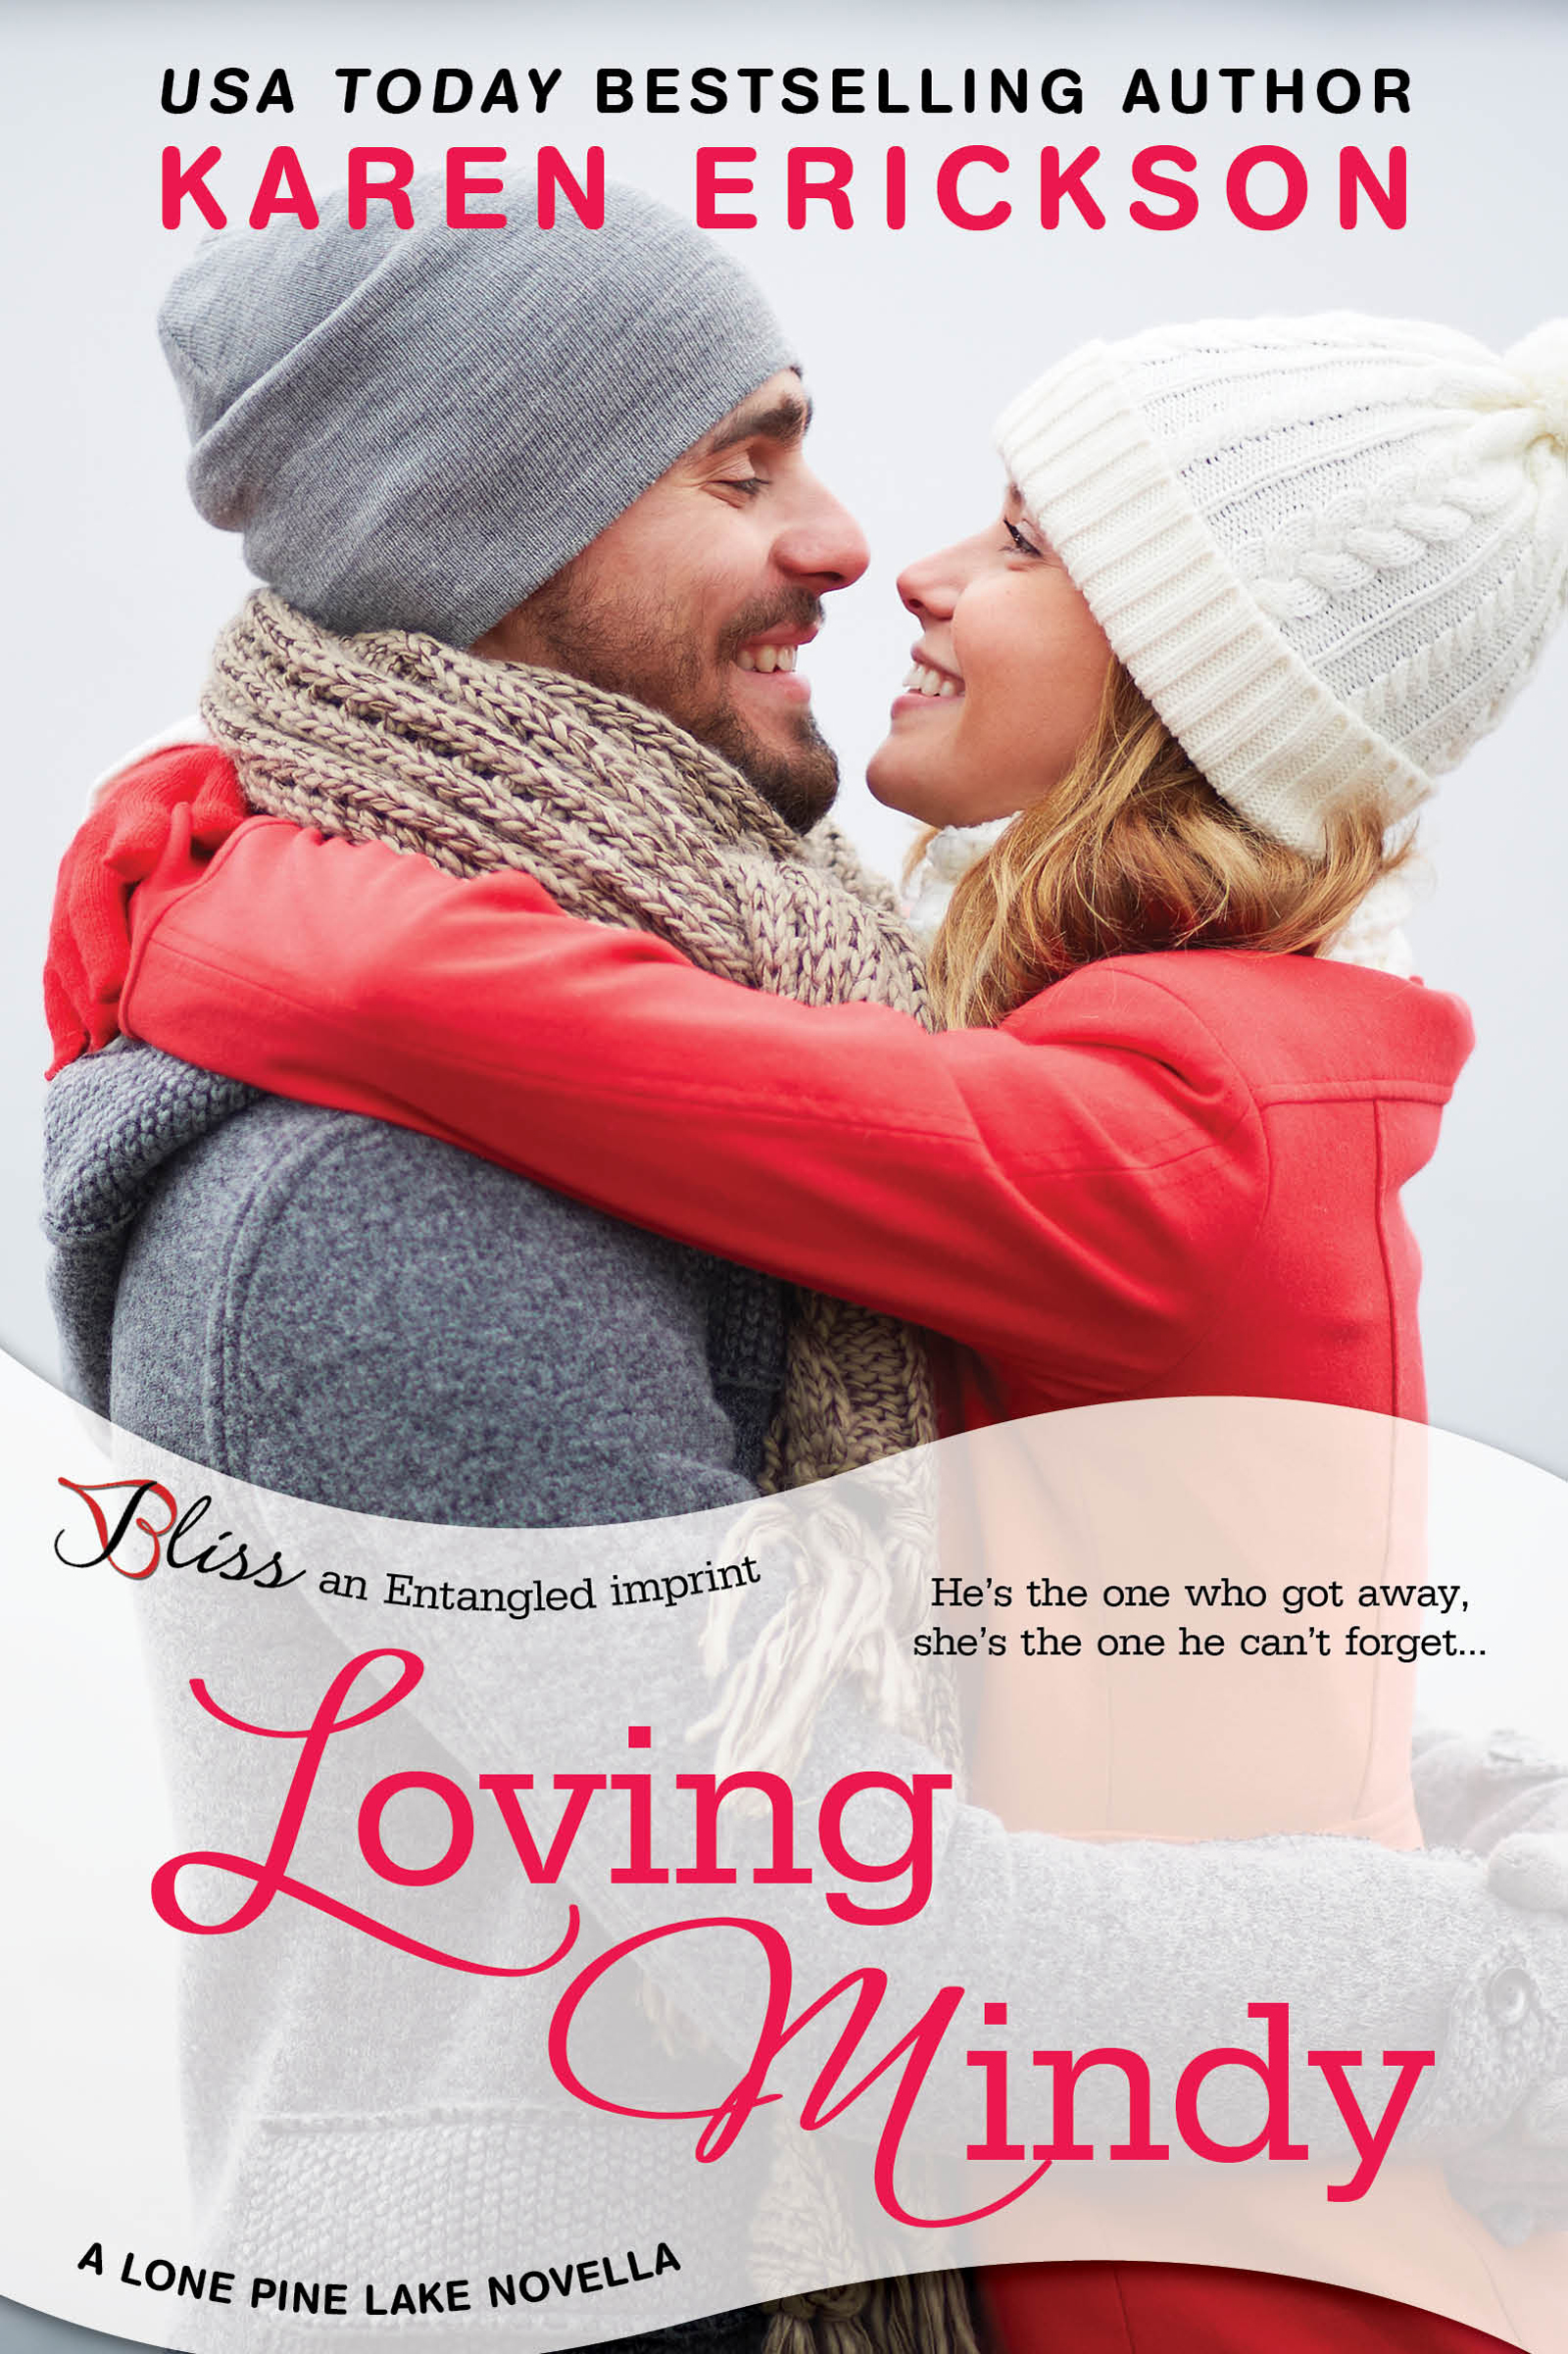 Loving Mindy - Lone Pine Lake, Book 3Amazon •B&N •iBooks •Kobo • BAM •GooglePlayPreviously released as part of the Stranded with a Hero anthology. Now available individually!He's the one who got away. She's the one he can't forget…Mindy McKenzie's day has gone from bad to worse. First, her ex whisked her kids away to attend his elopement, leaving her alone for the holidays. And then the man whose heart she broke years ago winds up on her doorstep—stranded. Josh Powers still has a body that can make her mouth water, but unfortunately, she's sure she missed her chance with him.Waiting out a storm with an attractive woman isn't normally a bad thing. But when it's the woman Josh Powers has never been able to get out of his head, it's pure torture. Especially since he knows she'll never feel the same way. Mindy is just as sexy and tempting as he remembers, but he can't risk his heart a second time.